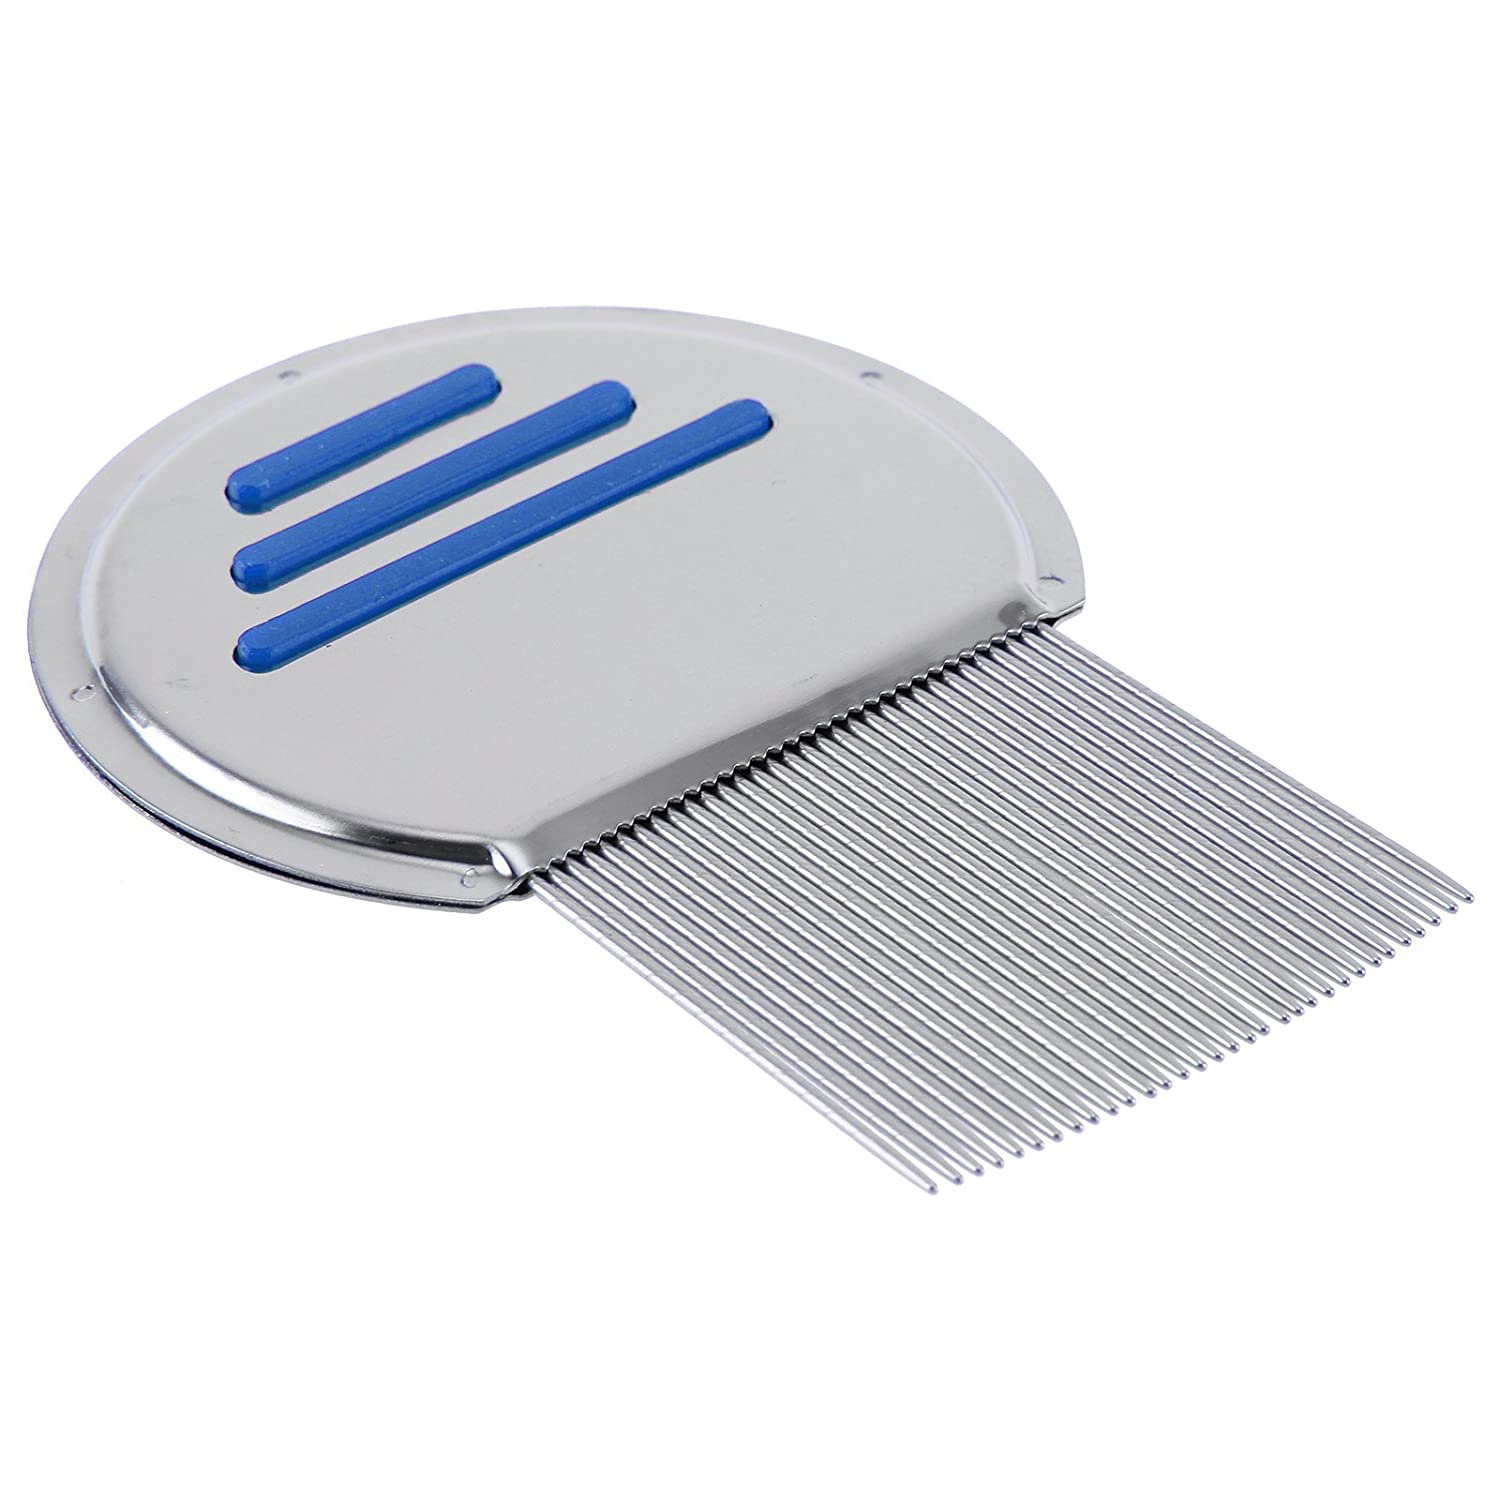 MultiWare Lice Nit Get Down To Nitty Gritty Stainless Steel Removal Comb Metal Head And Teeth Red oem